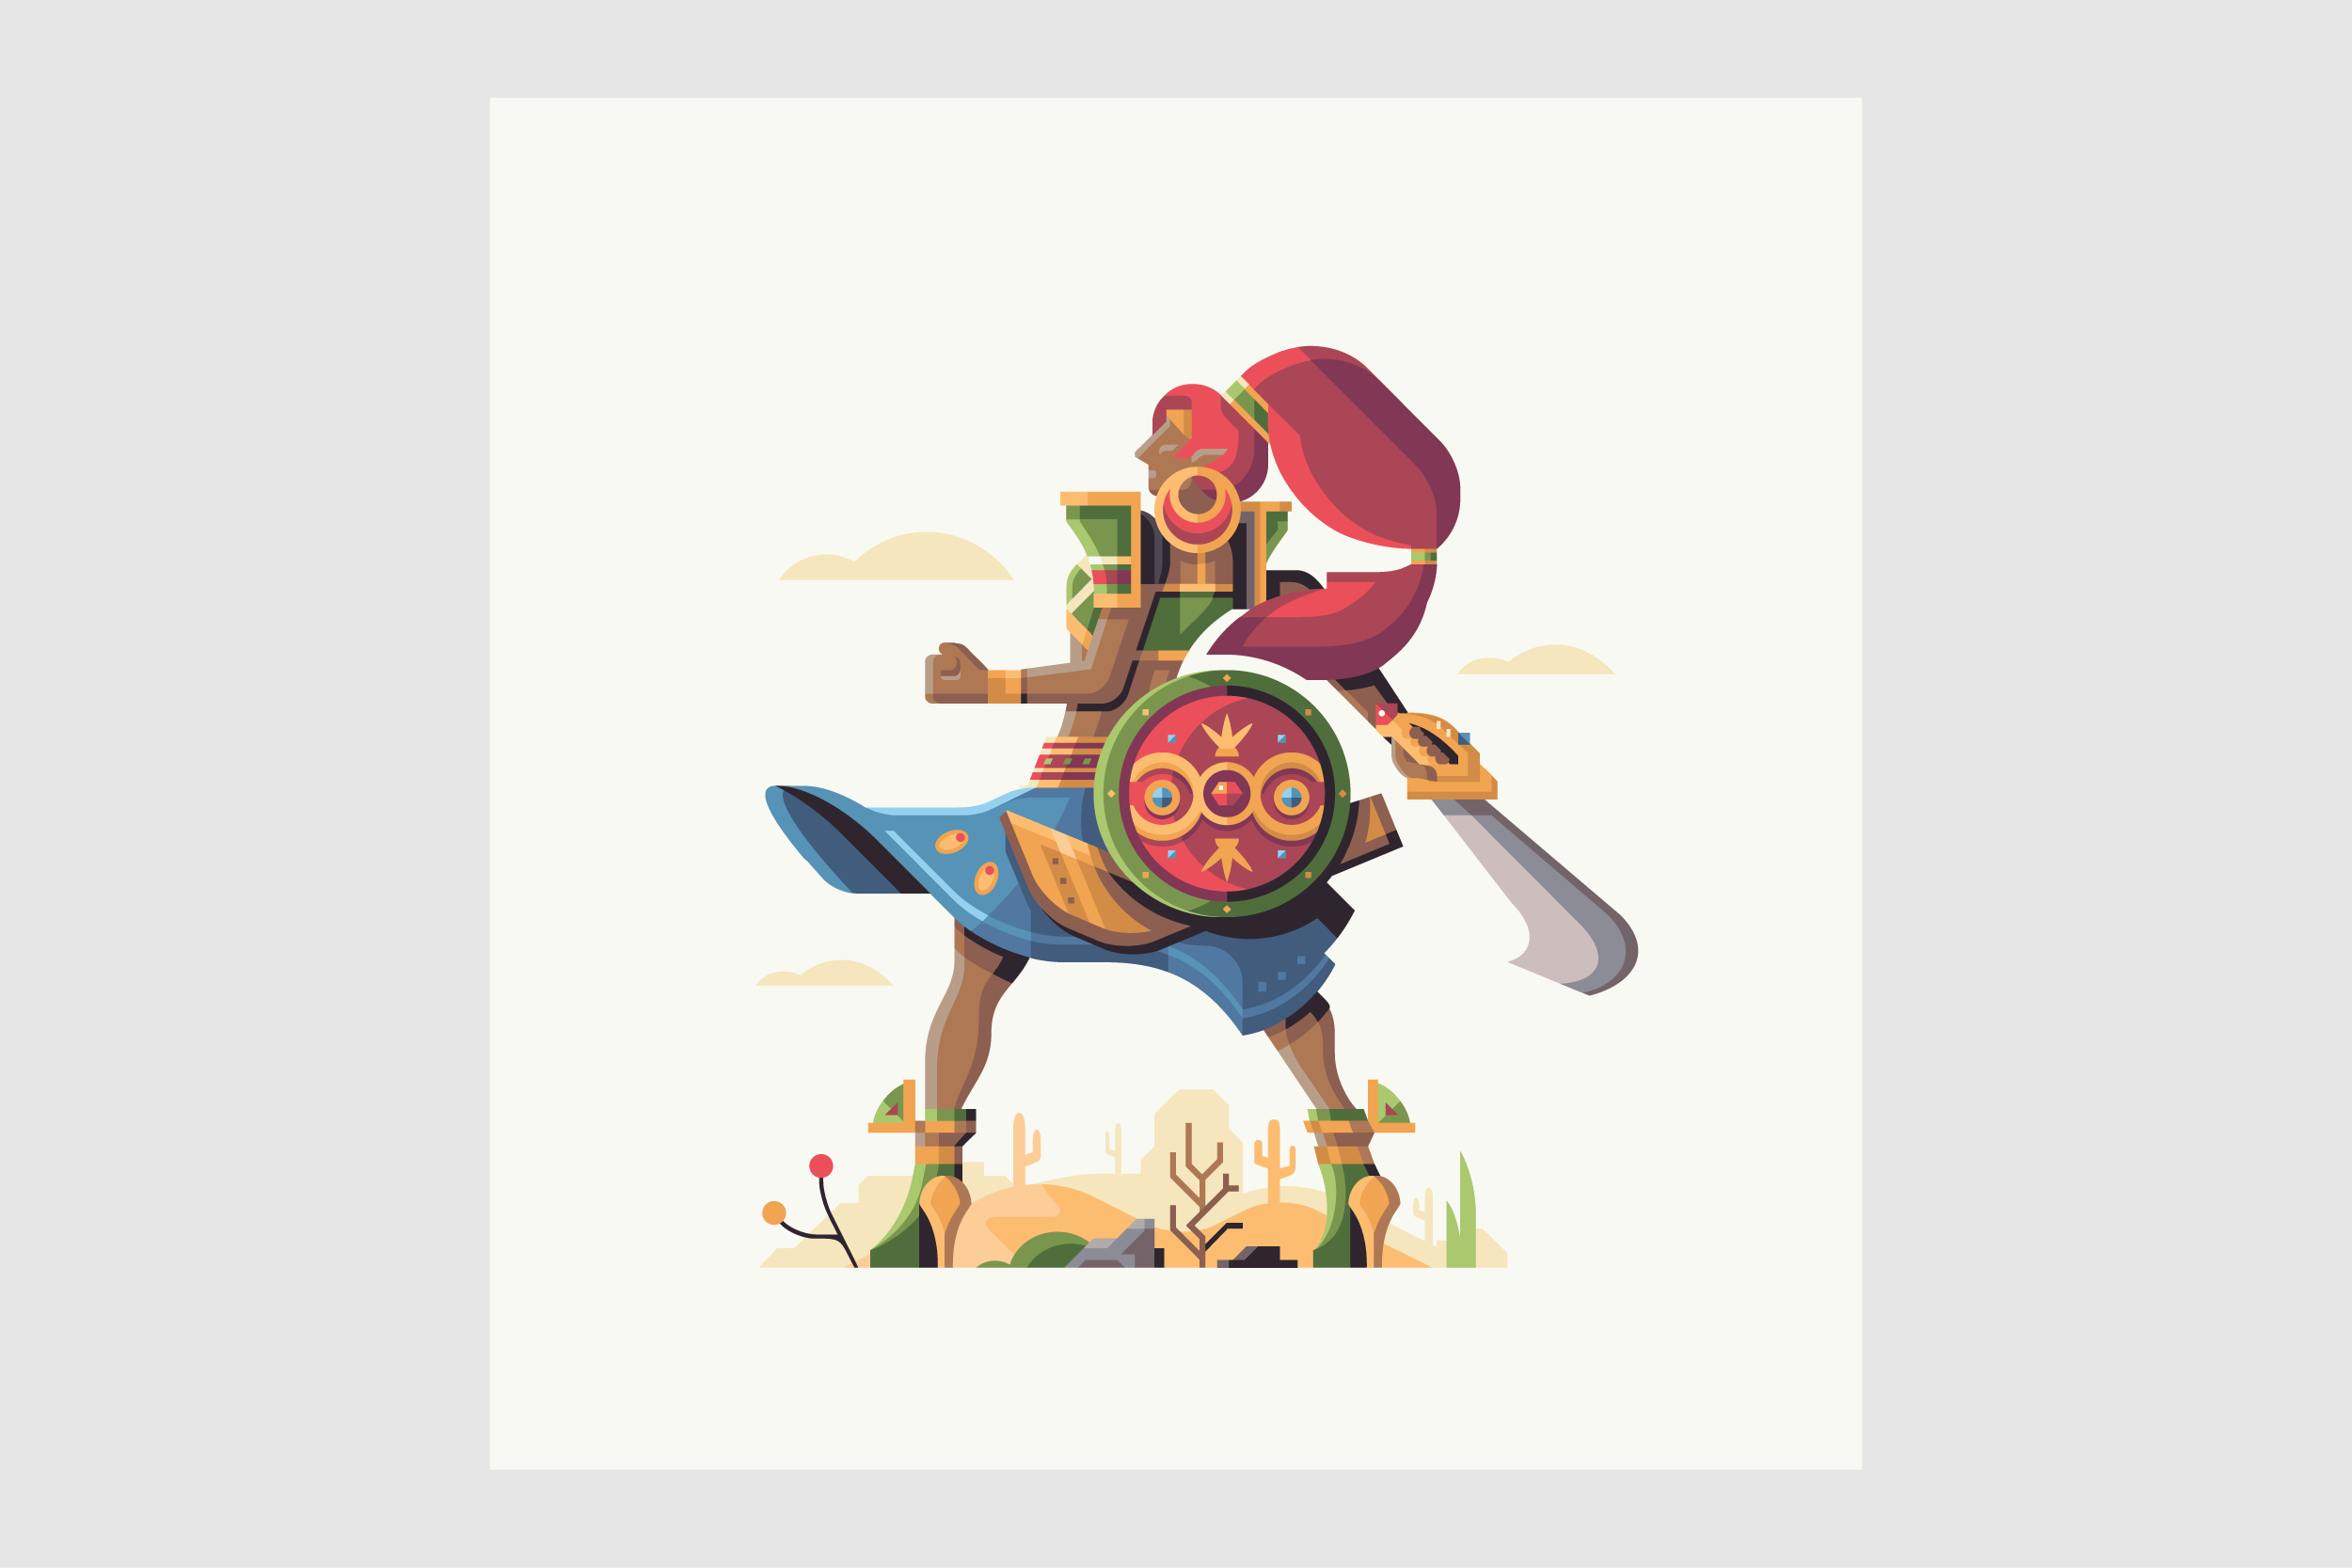 Wild series by Matt Anderson. Inspired by Zelda Breath of the Wild. Champion of the Desert (Urbosa).